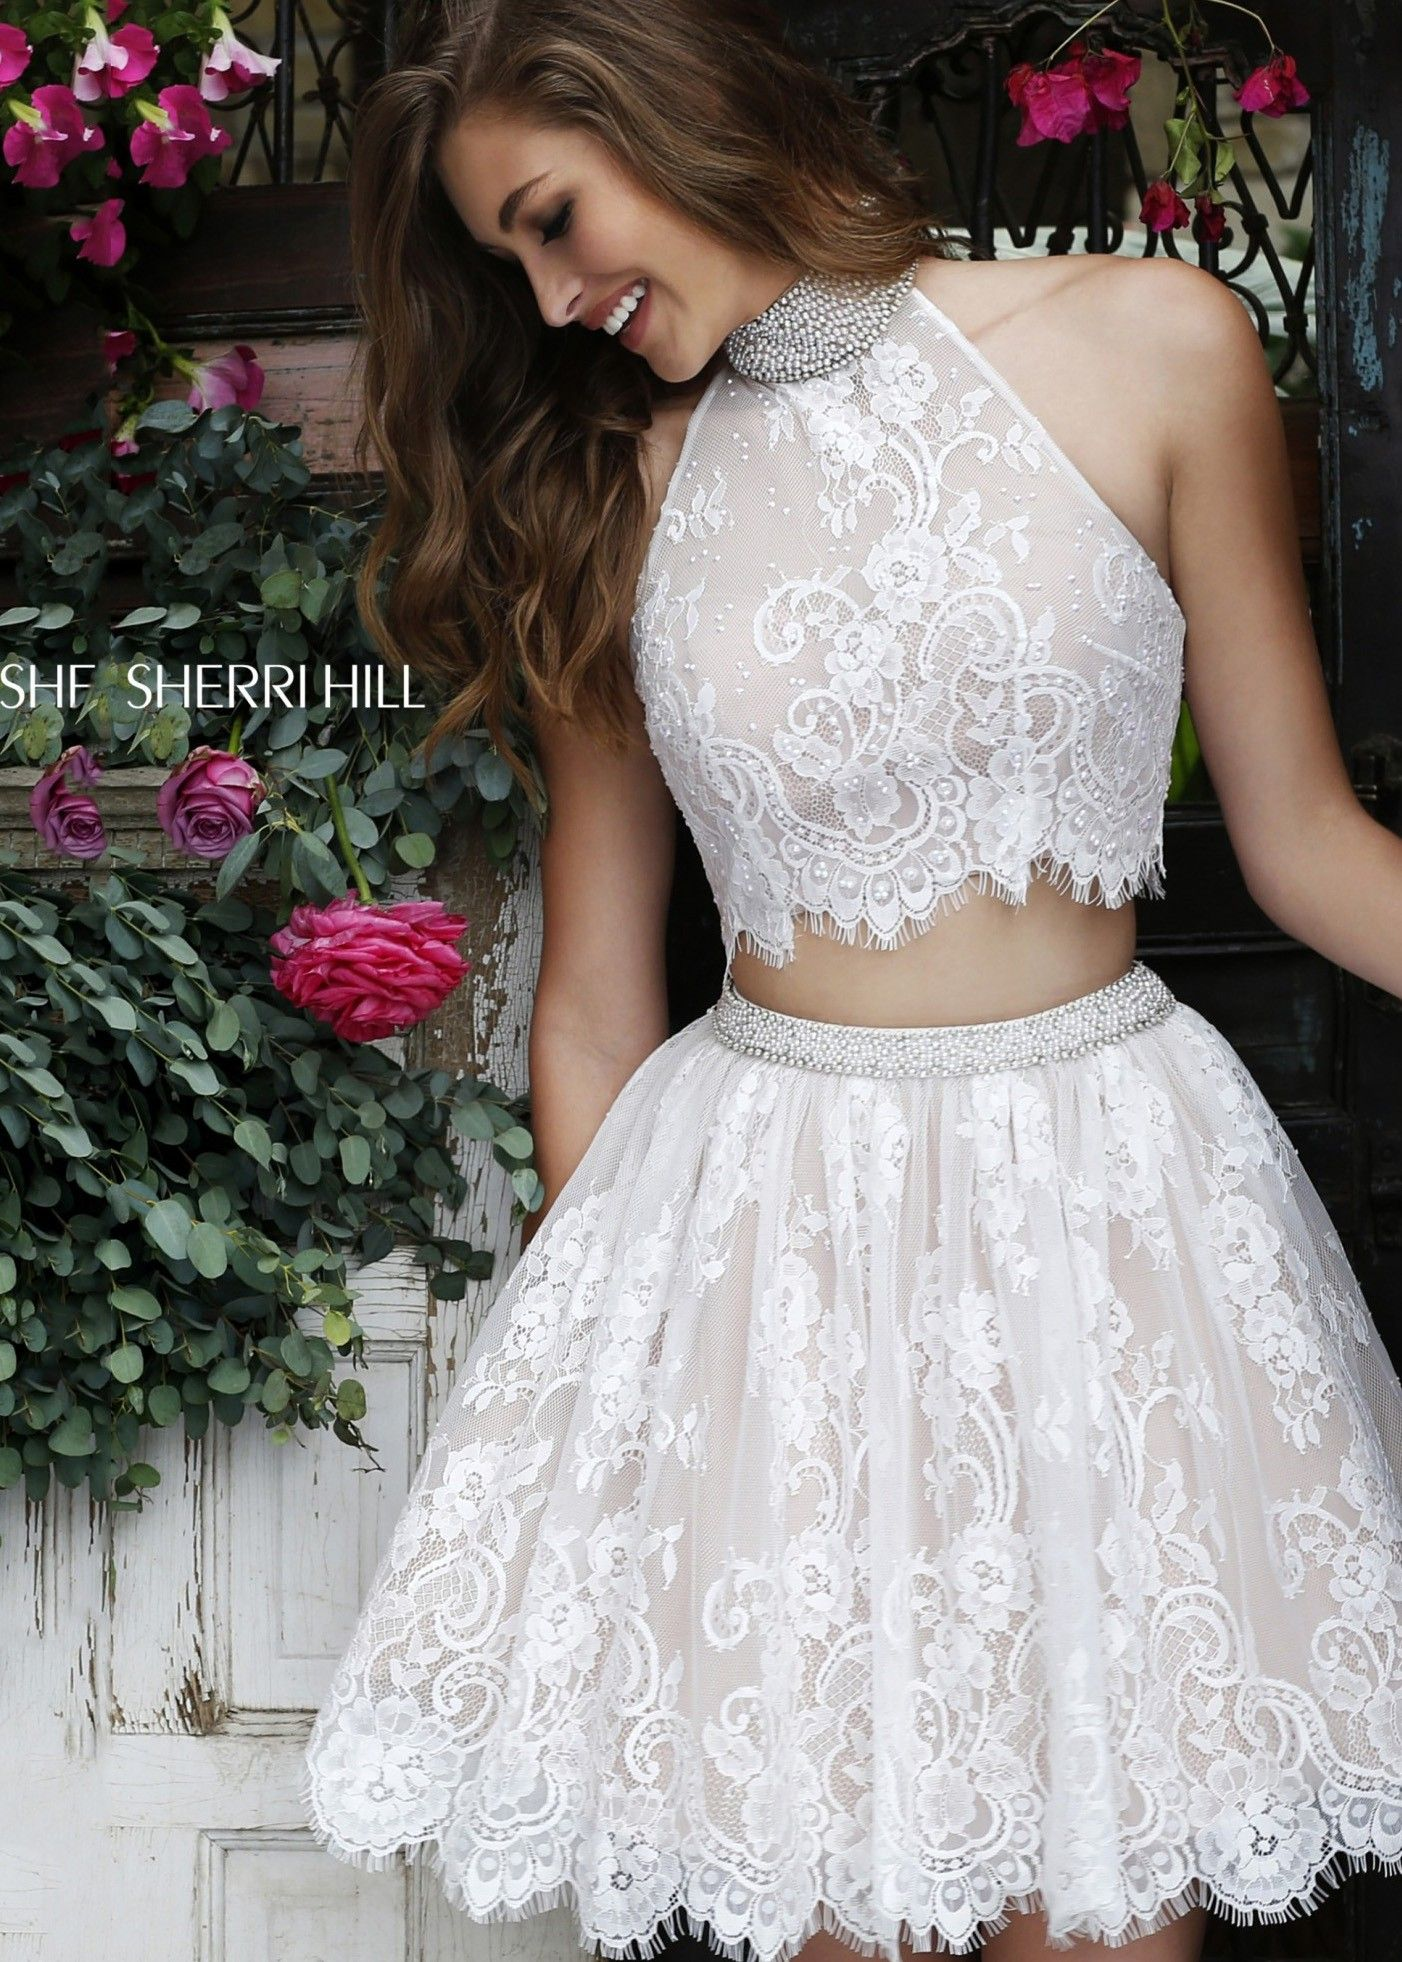 Dance The Night Away In This Fu And Flirty Lace 2 Piece Dress The Lovely Sleeveless Crop Top Feature Piece Prom Dress Homecoming Dresses Prom Dresses For Sale [ 1962 x 1402 Pixel ]